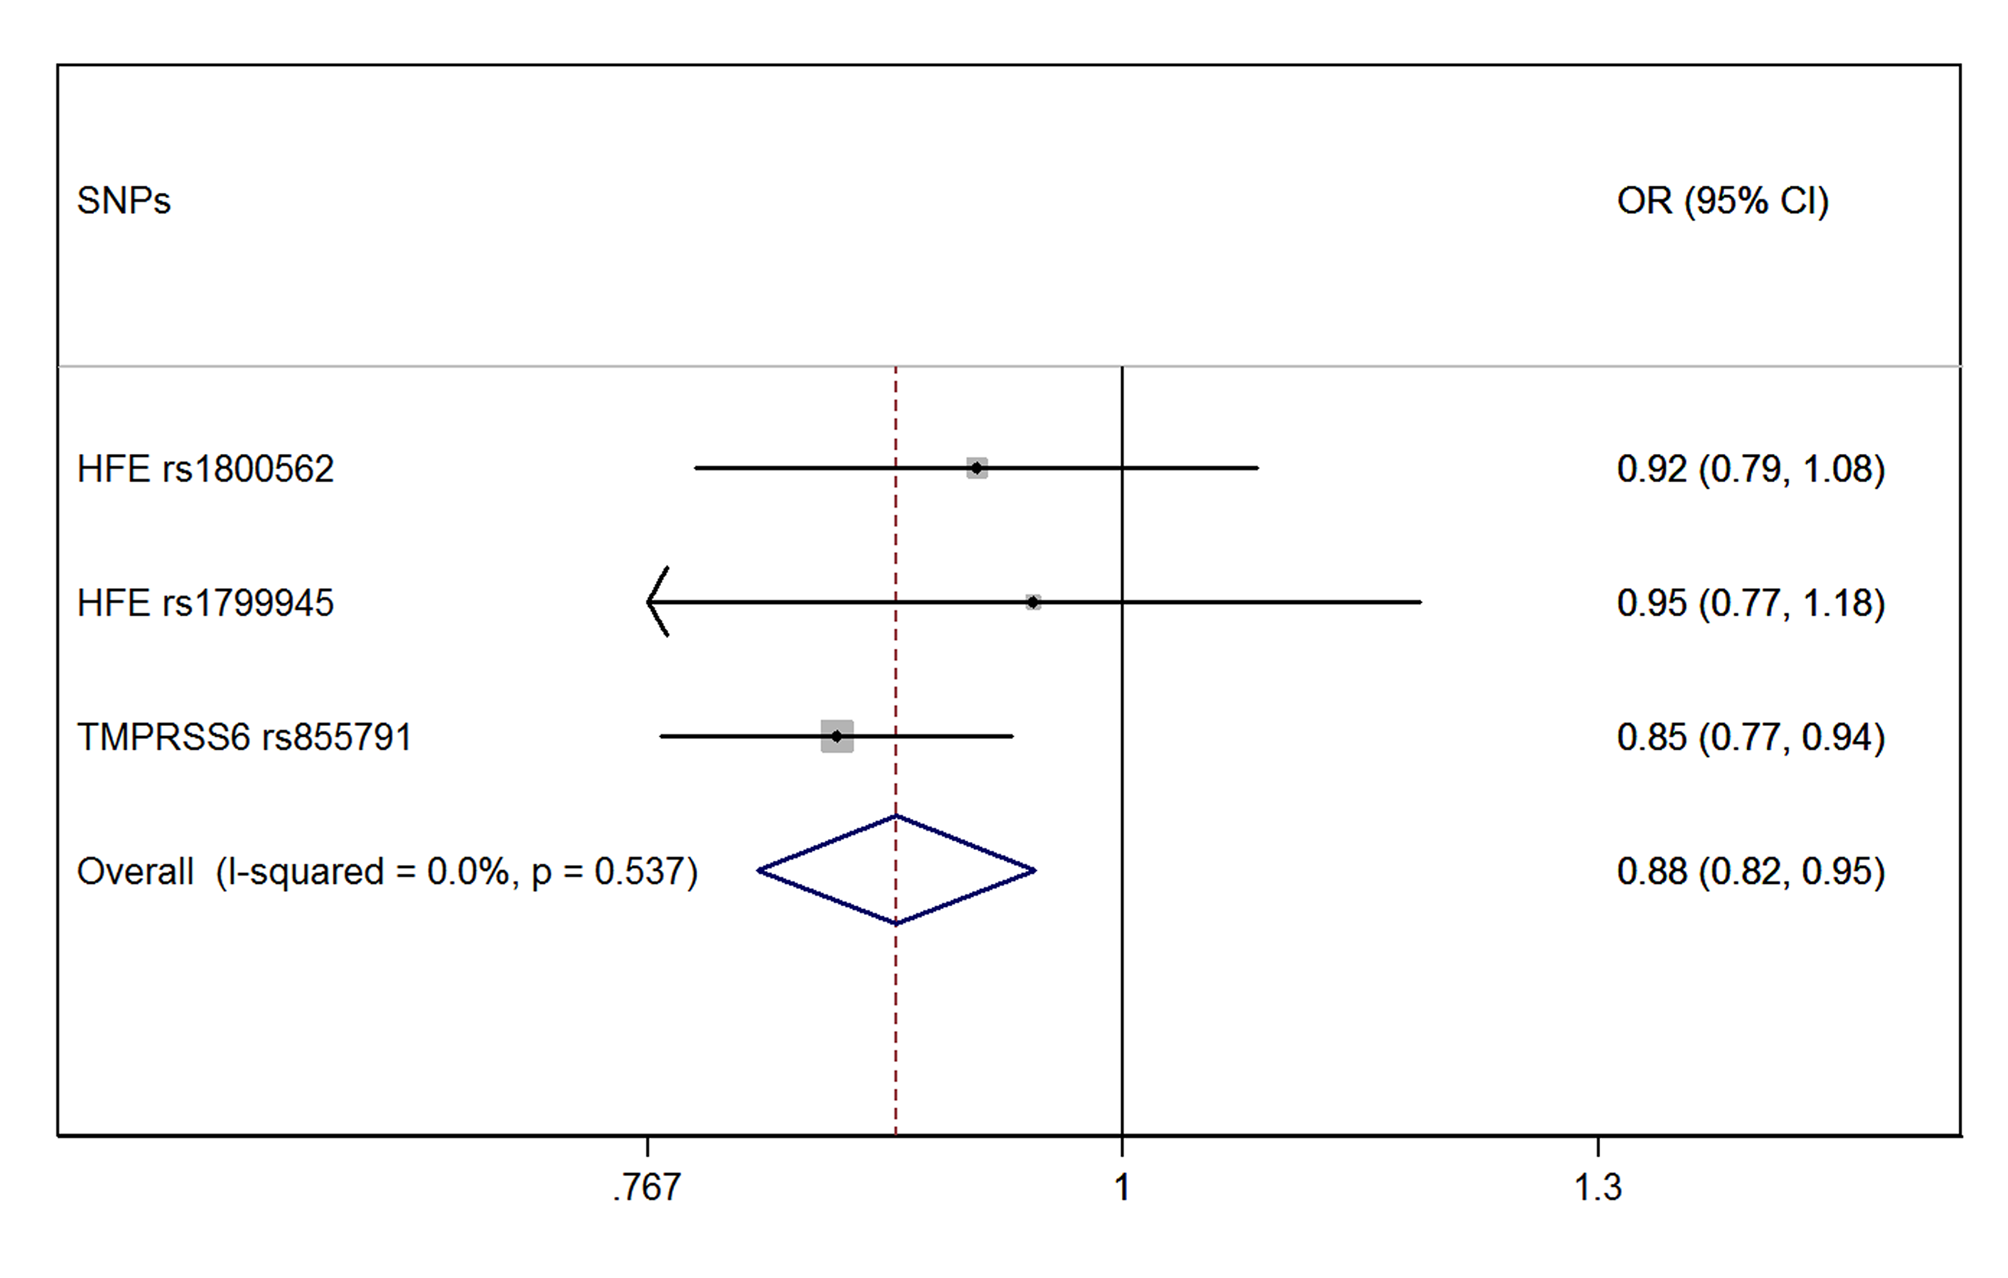 Forest plot of the MR estimates from the three instruments.